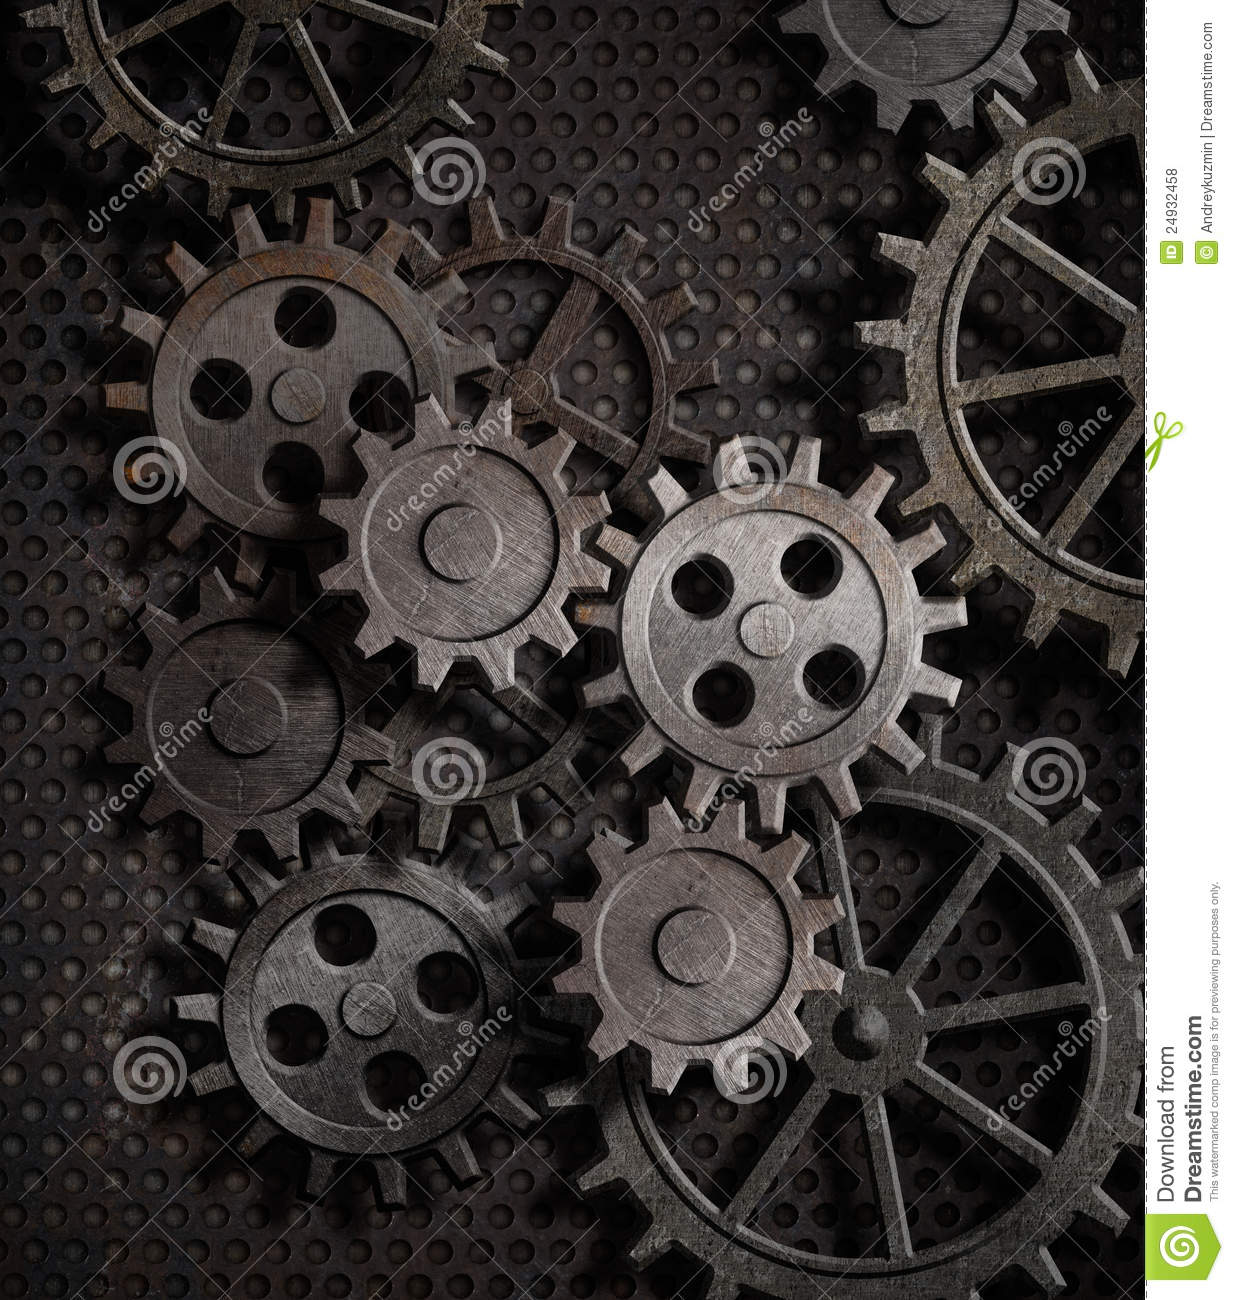 Rusty Gears And Cogs Metal Background Royalty Free Stock